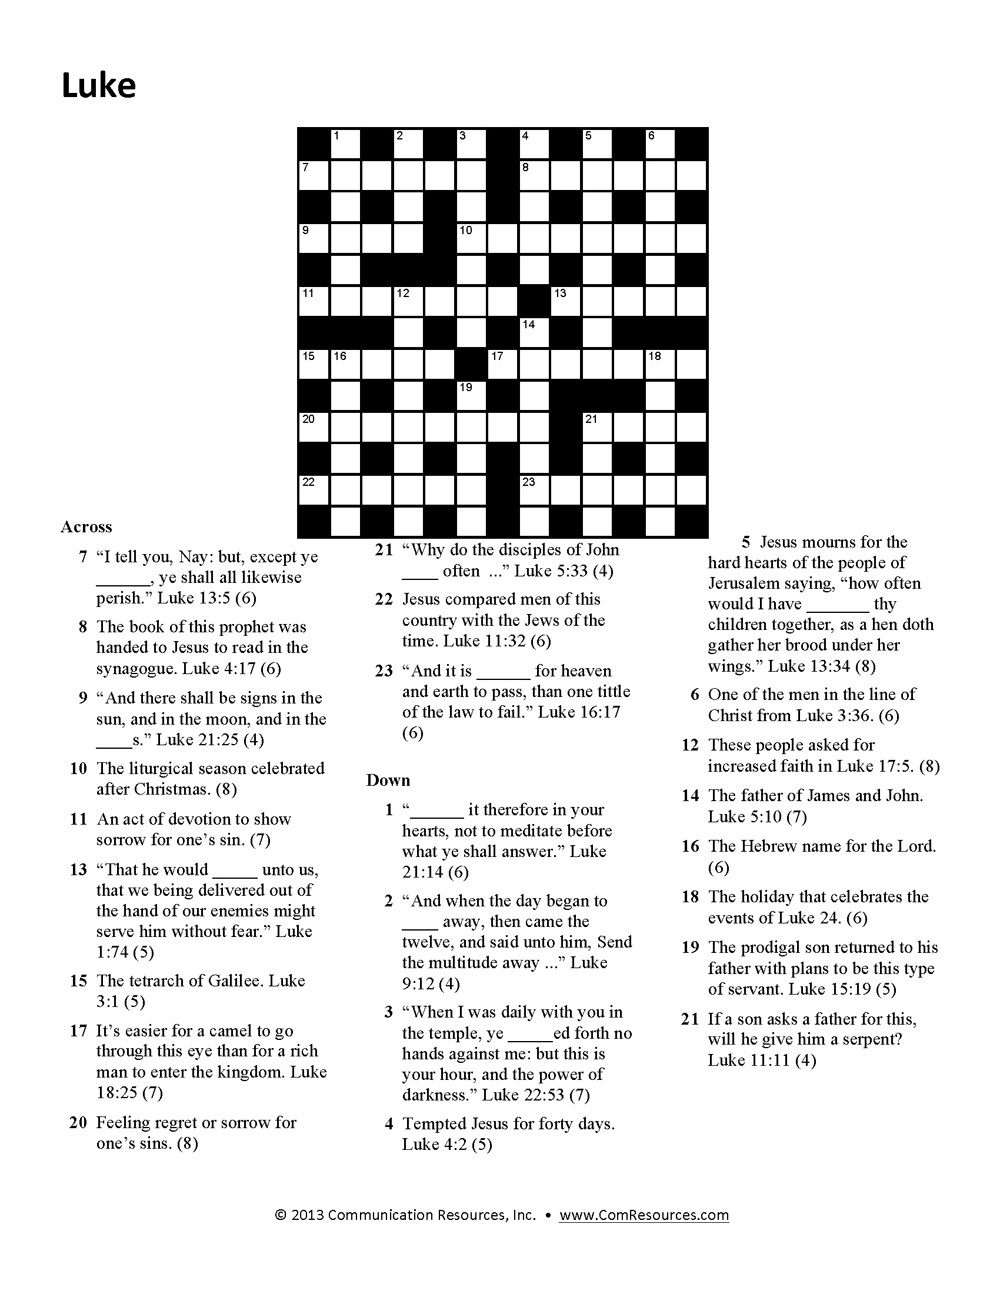 15 Fun Bible Crossword Puzzles | Kittybabylove - Free Printable Religious Crossword Puzzles